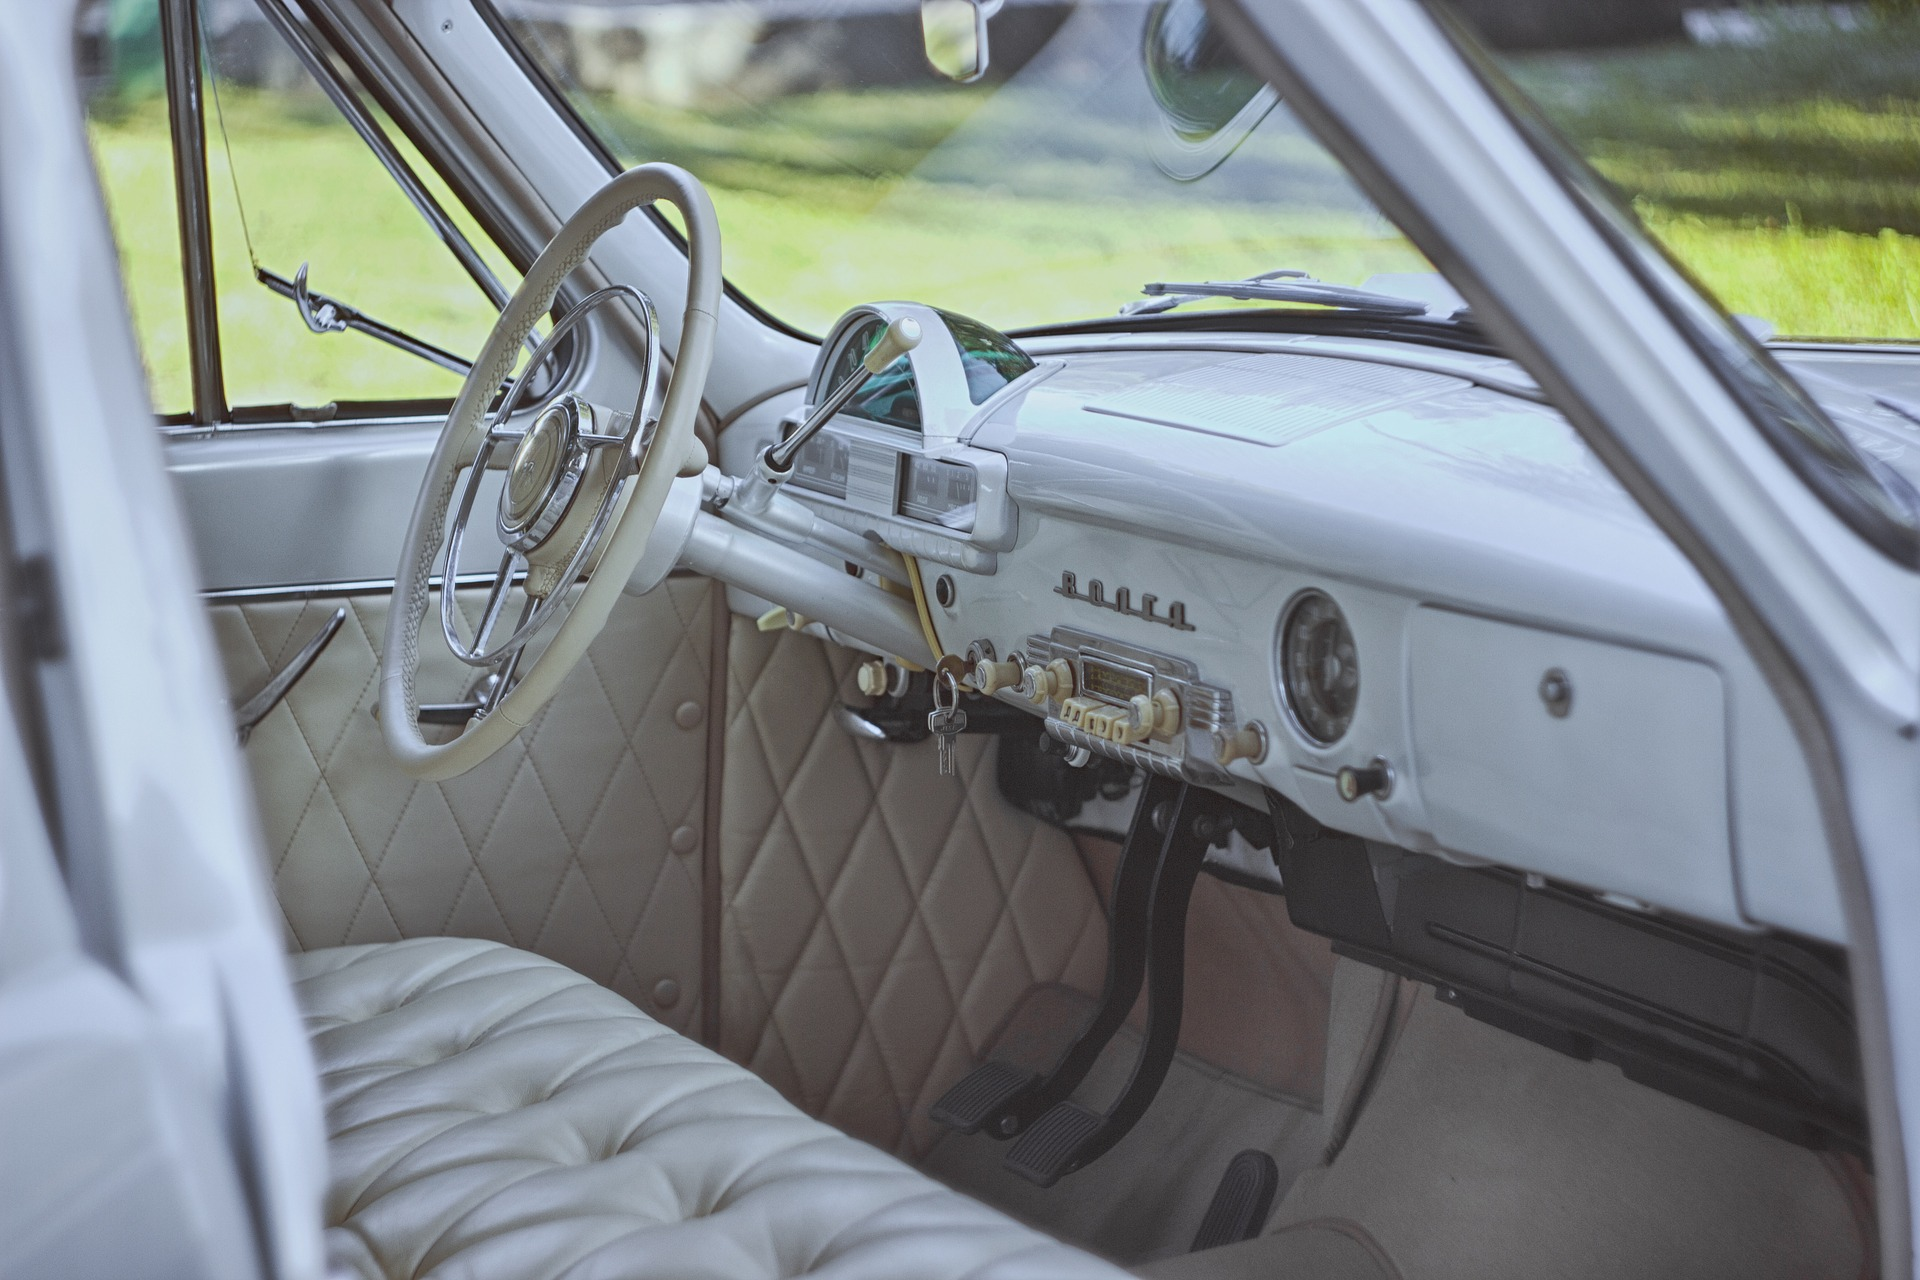 https://s3.us-east-2.amazonaws.com/withjamesbarr/genres/car-interior-white.jpg